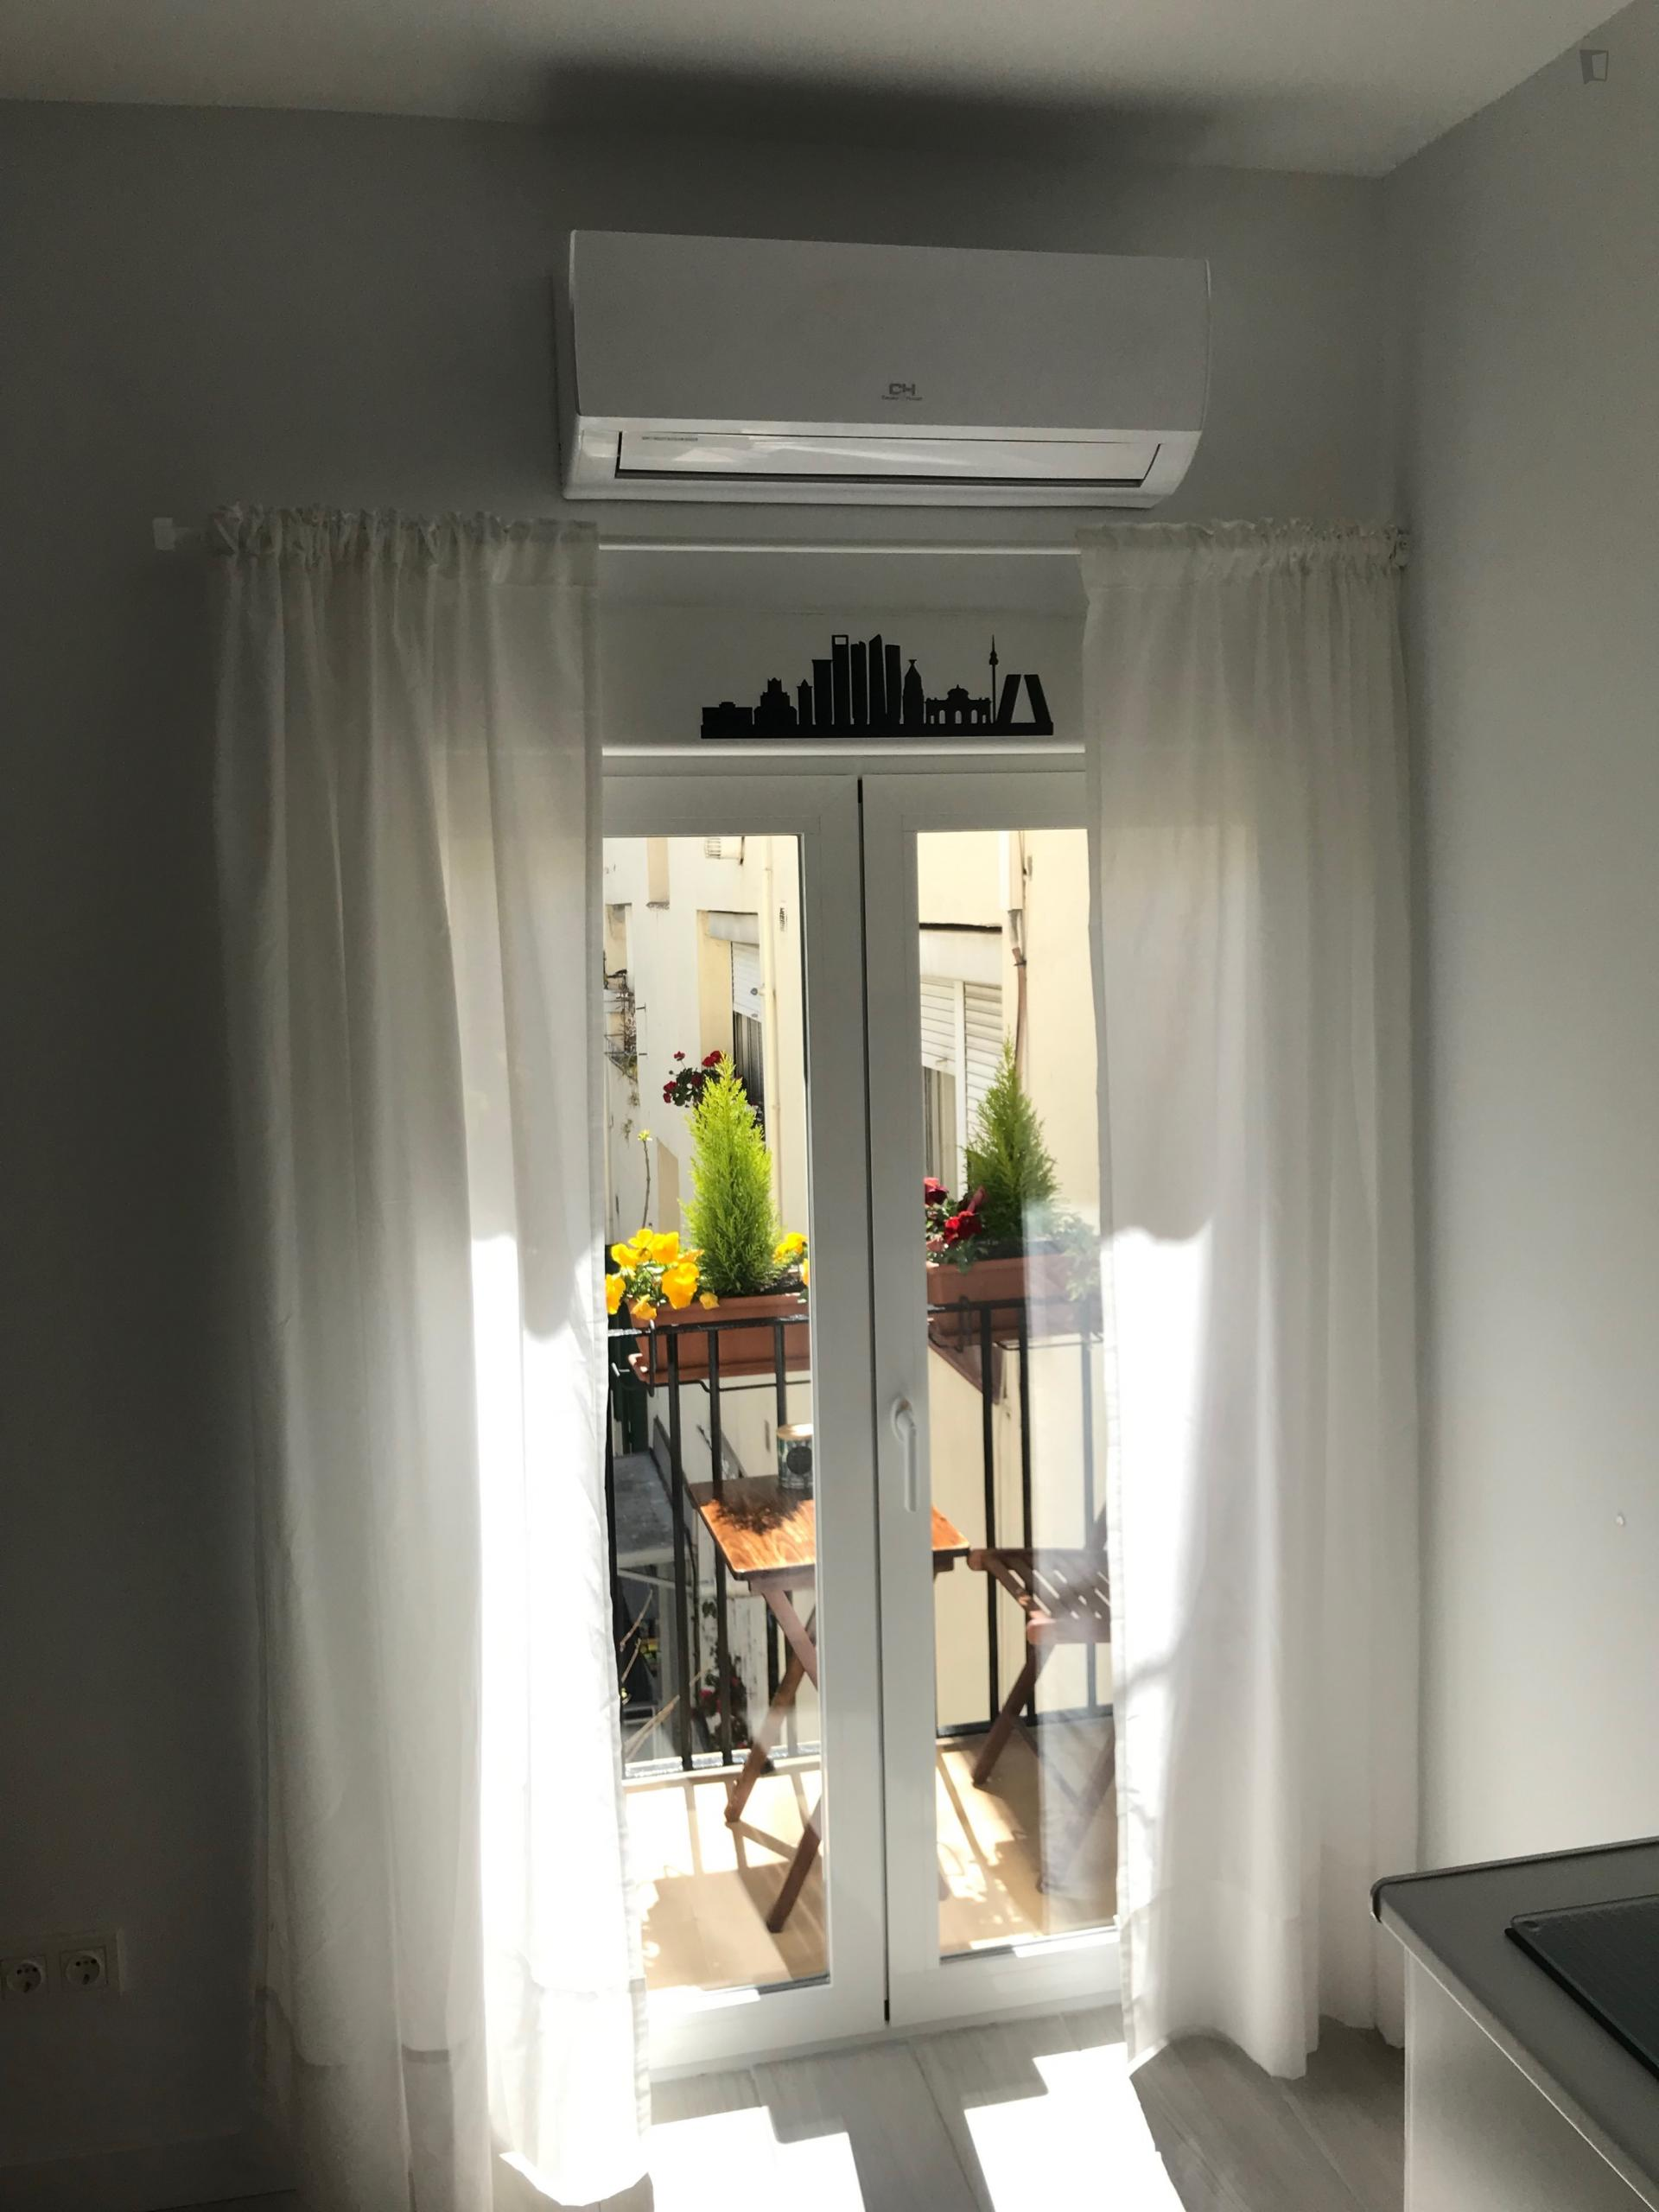 Rincón - Shared flat with double bedroom in Madrid